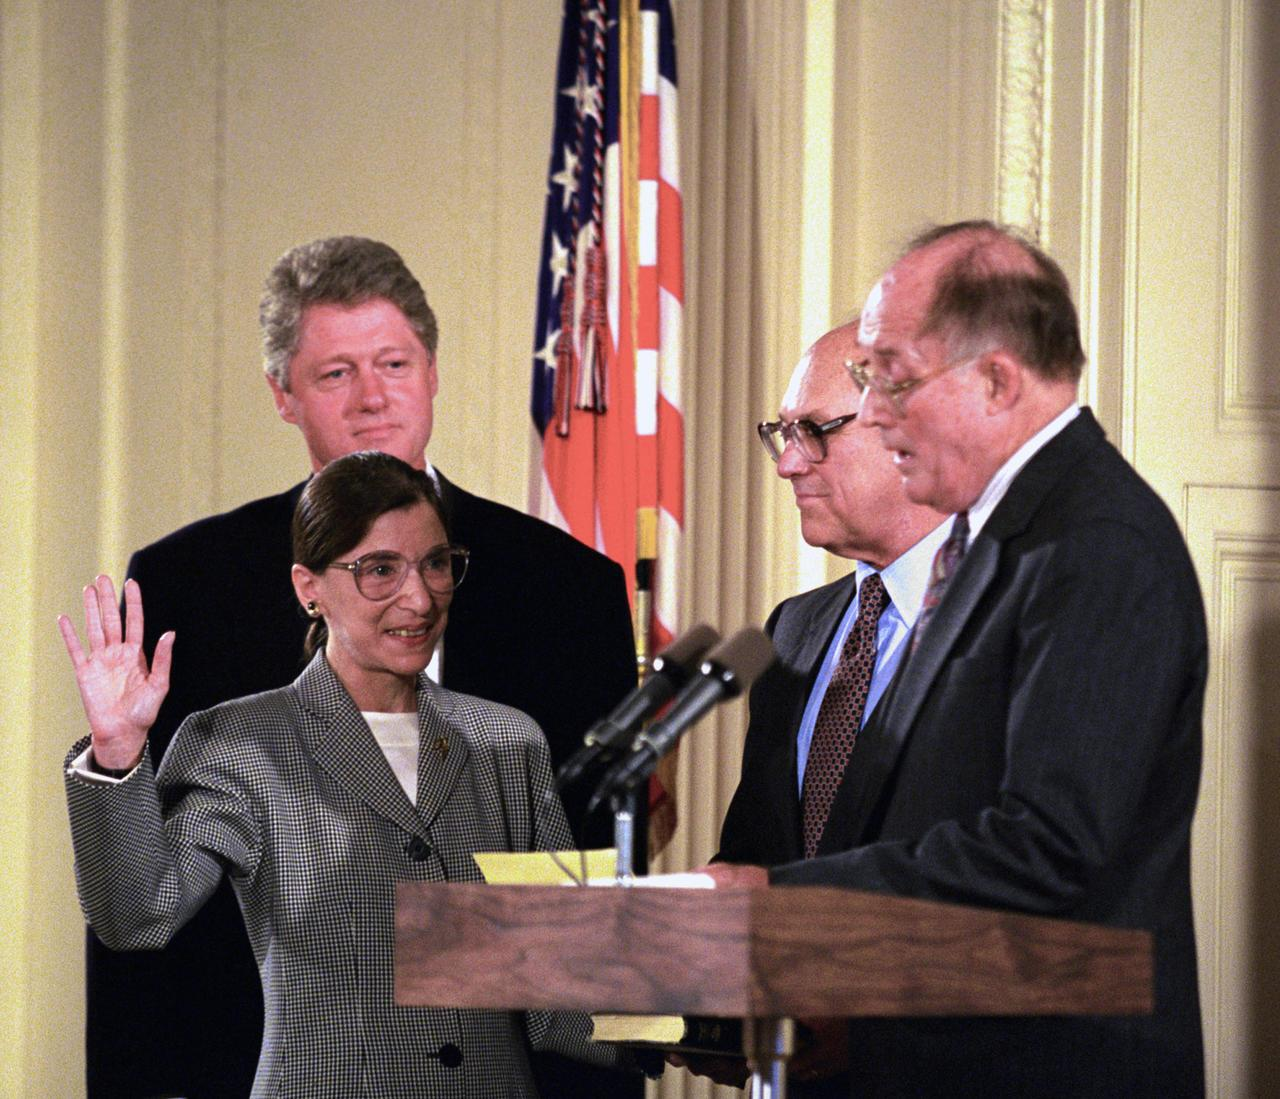 Photograph of Ruth Bader Ginsburg being sworn in to the Supreme Court of the United States